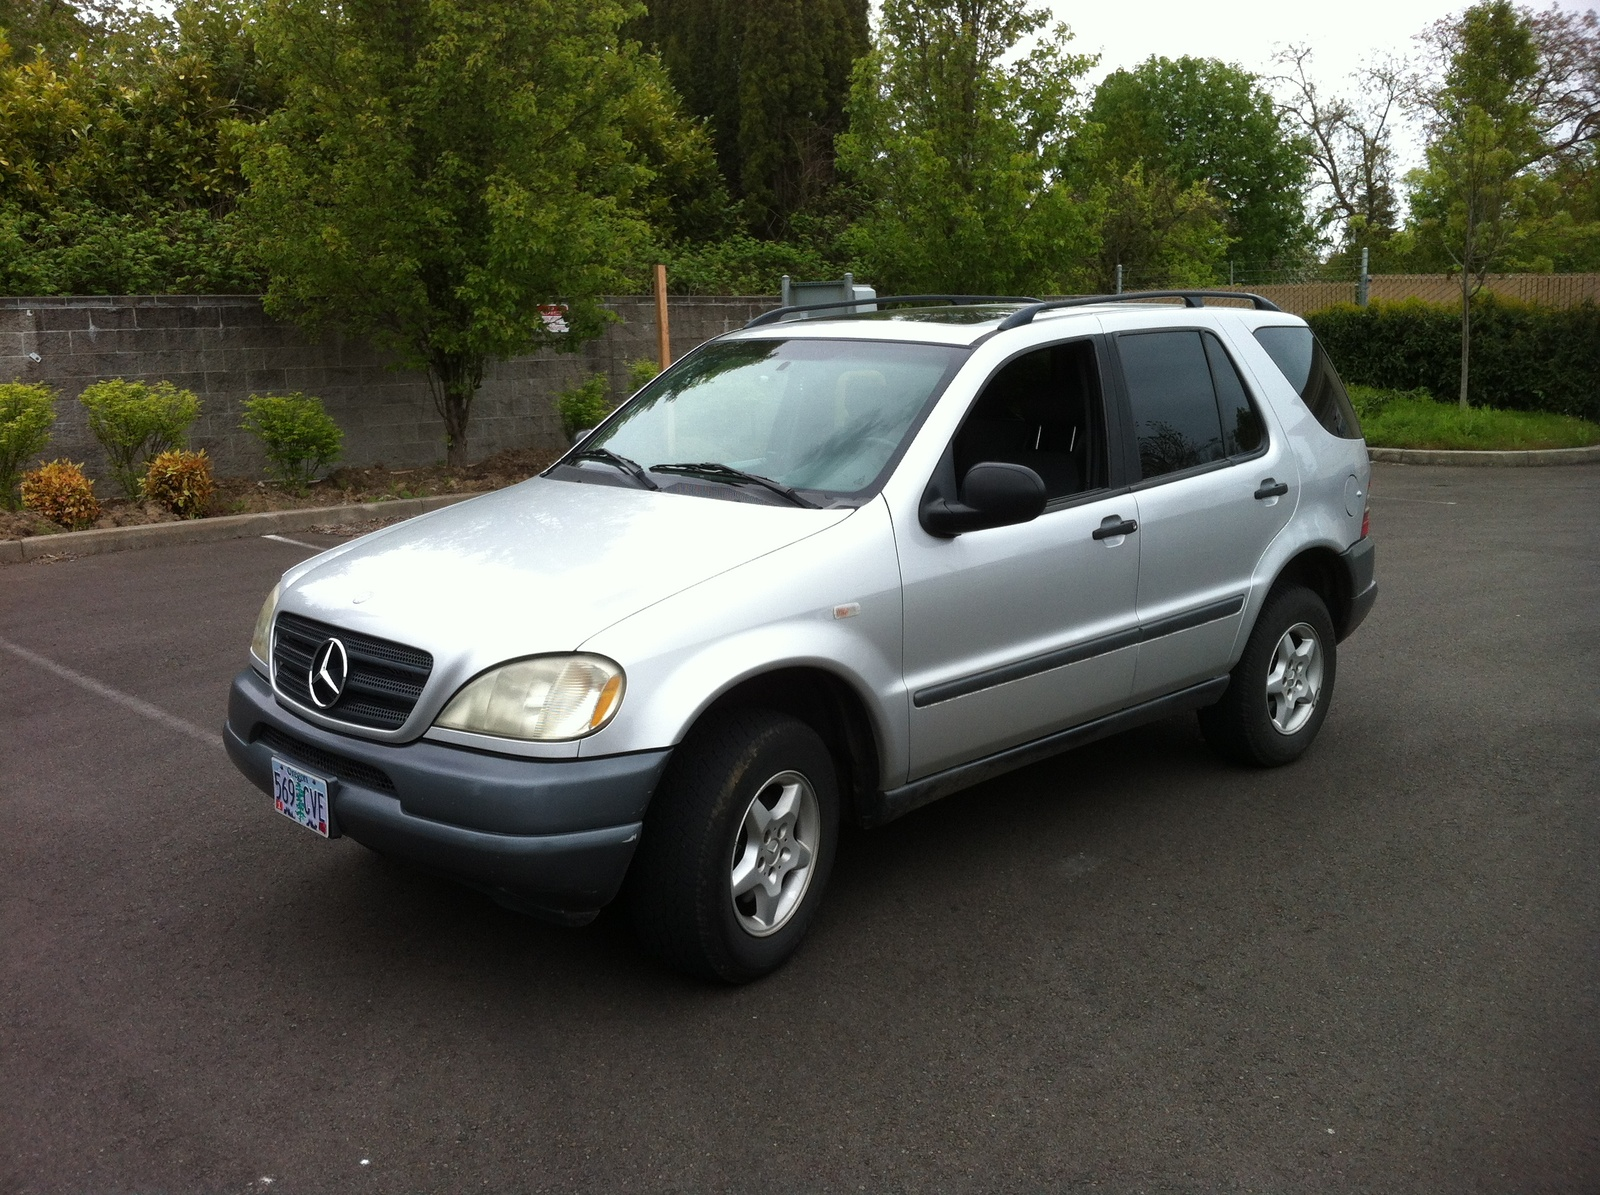 1998 mercedes benz m class pictures cargurus for Ml320 mercedes benz 1998